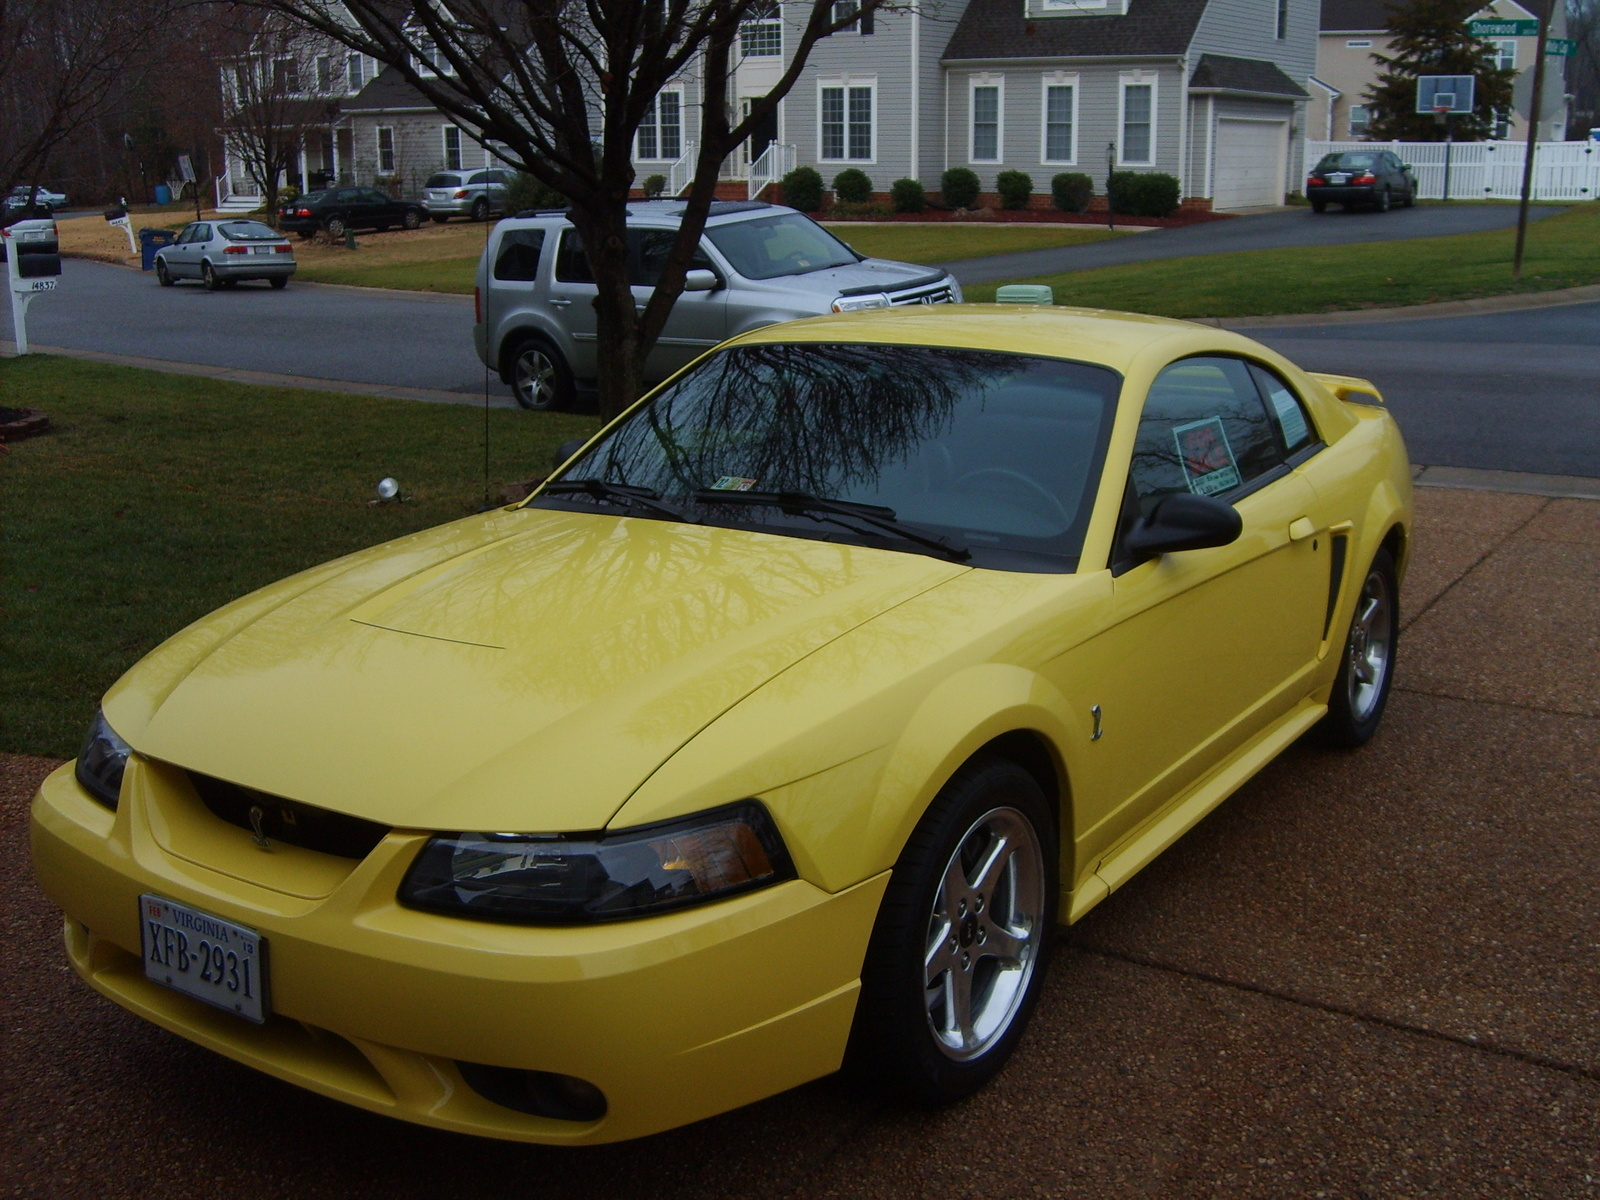 2001 mustang cobra images reverse search. Black Bedroom Furniture Sets. Home Design Ideas